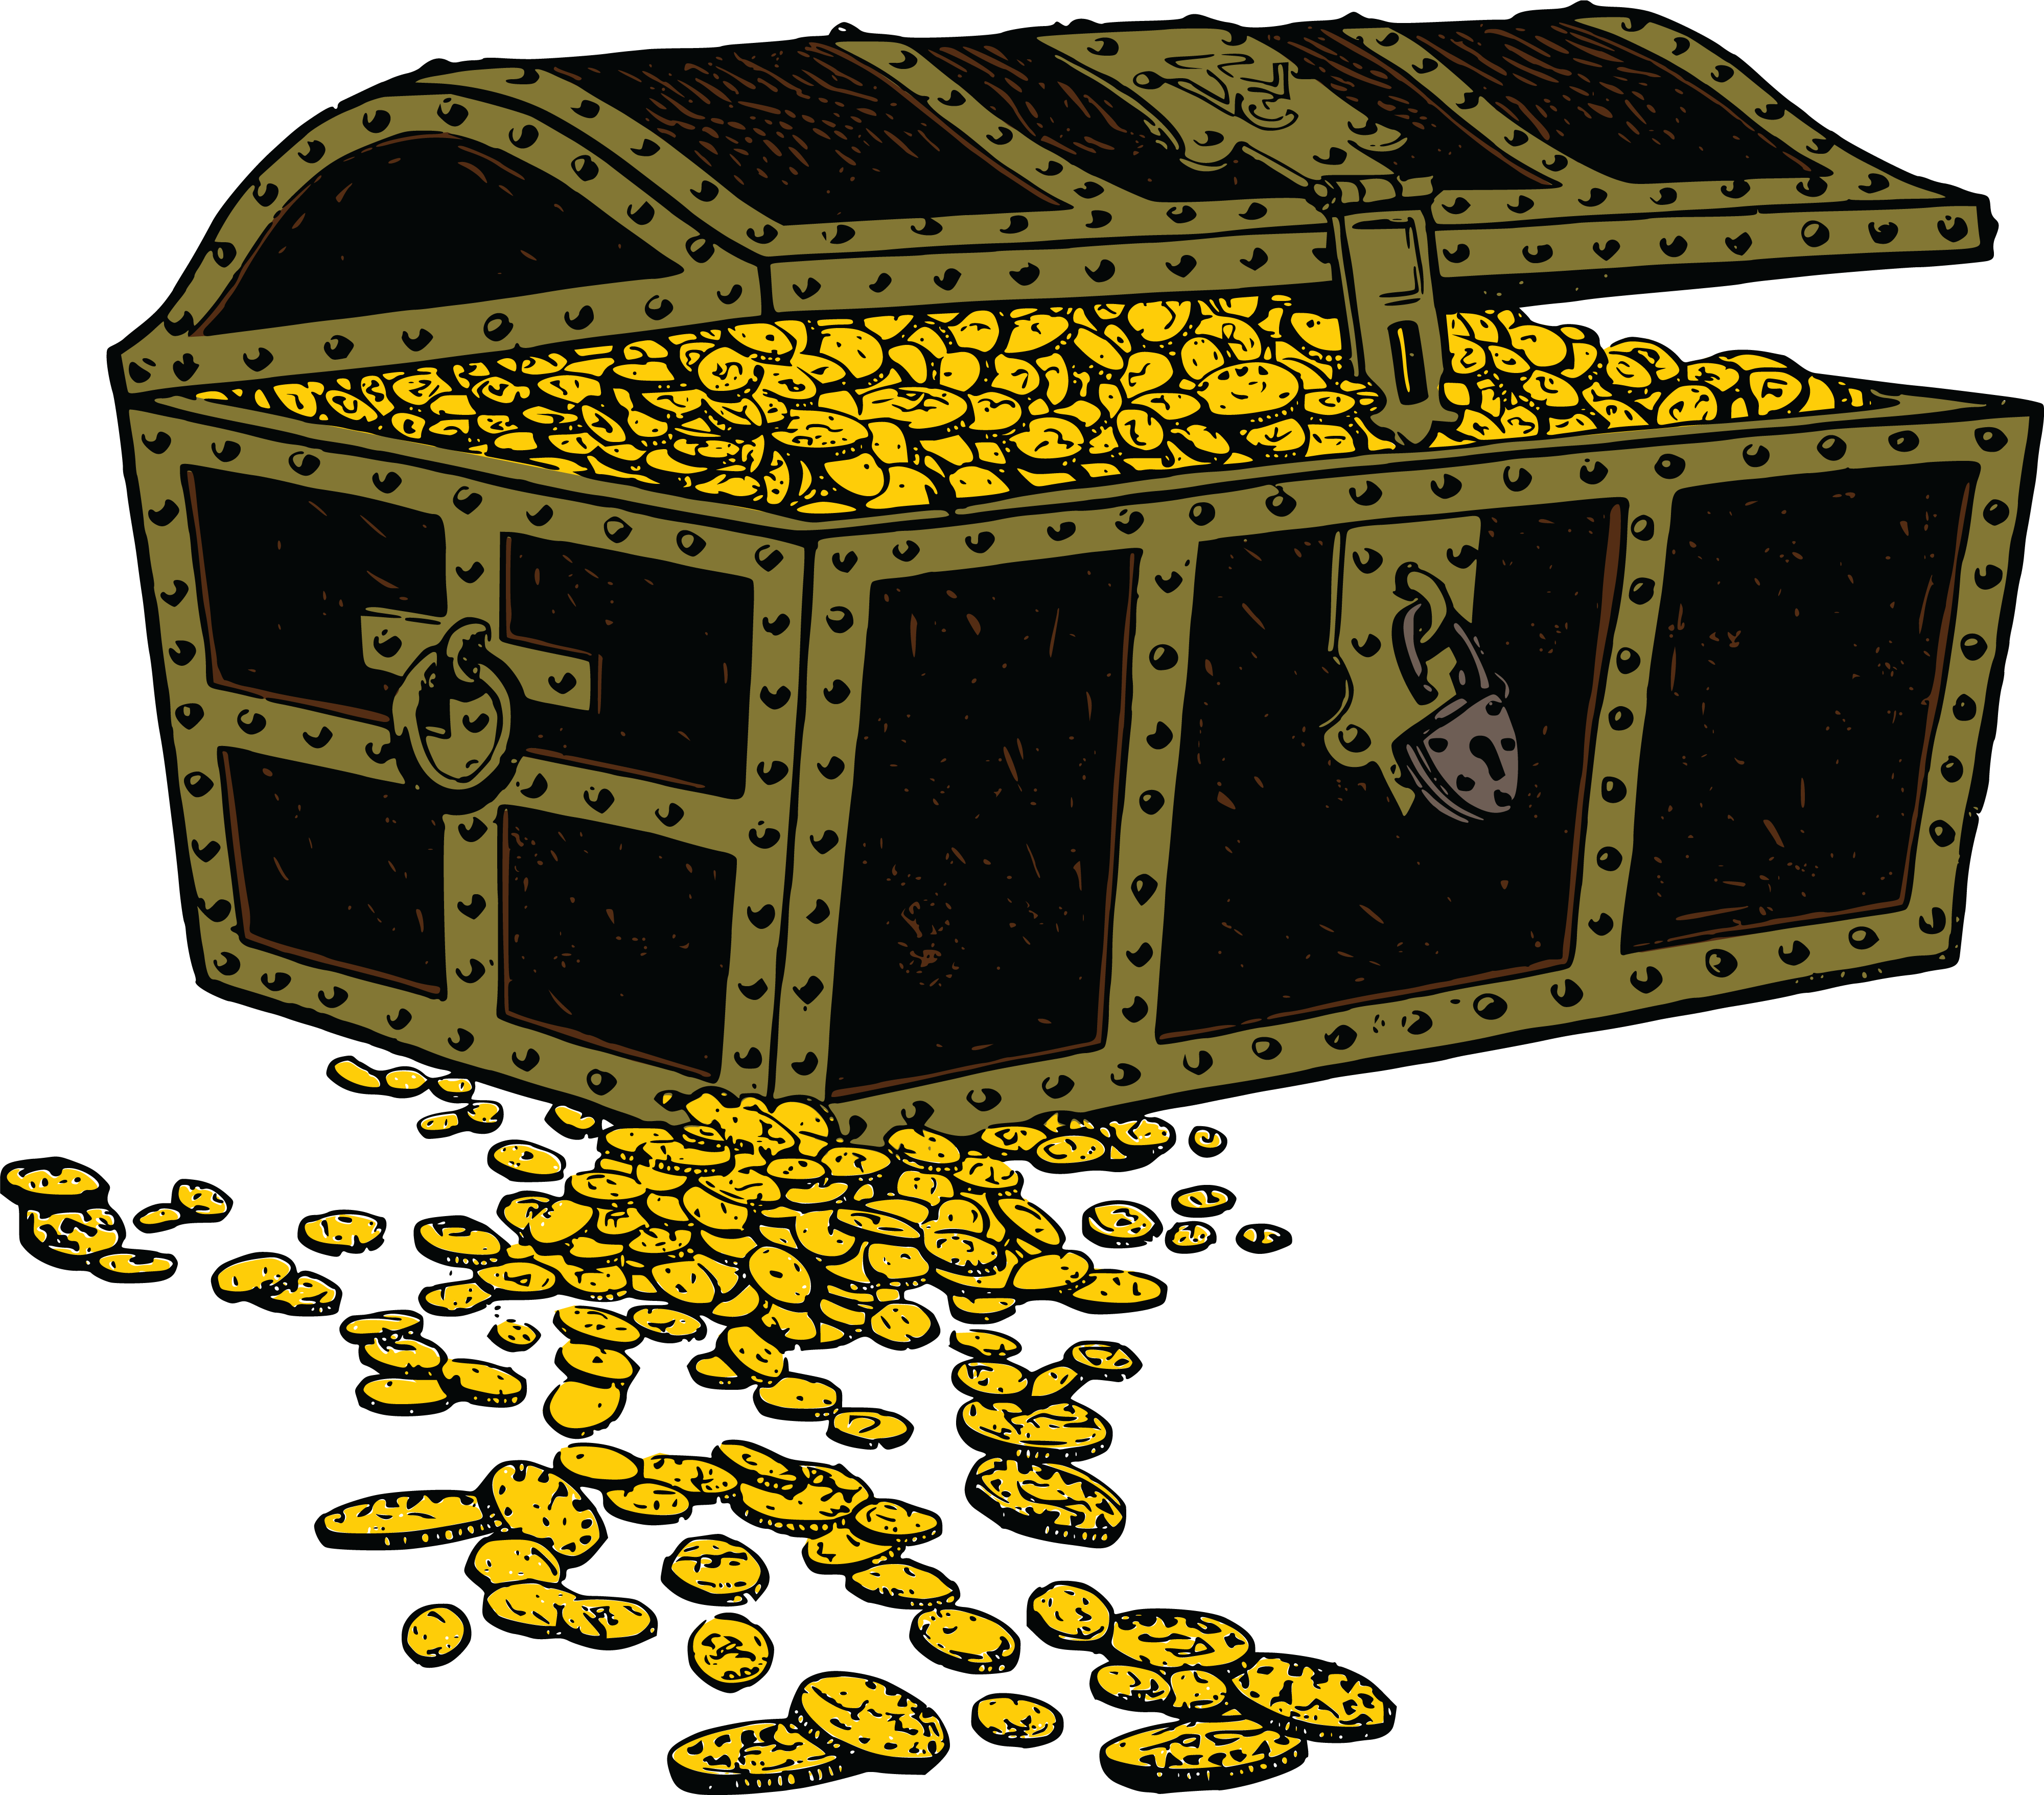 Free Clipart Of A treasure chest